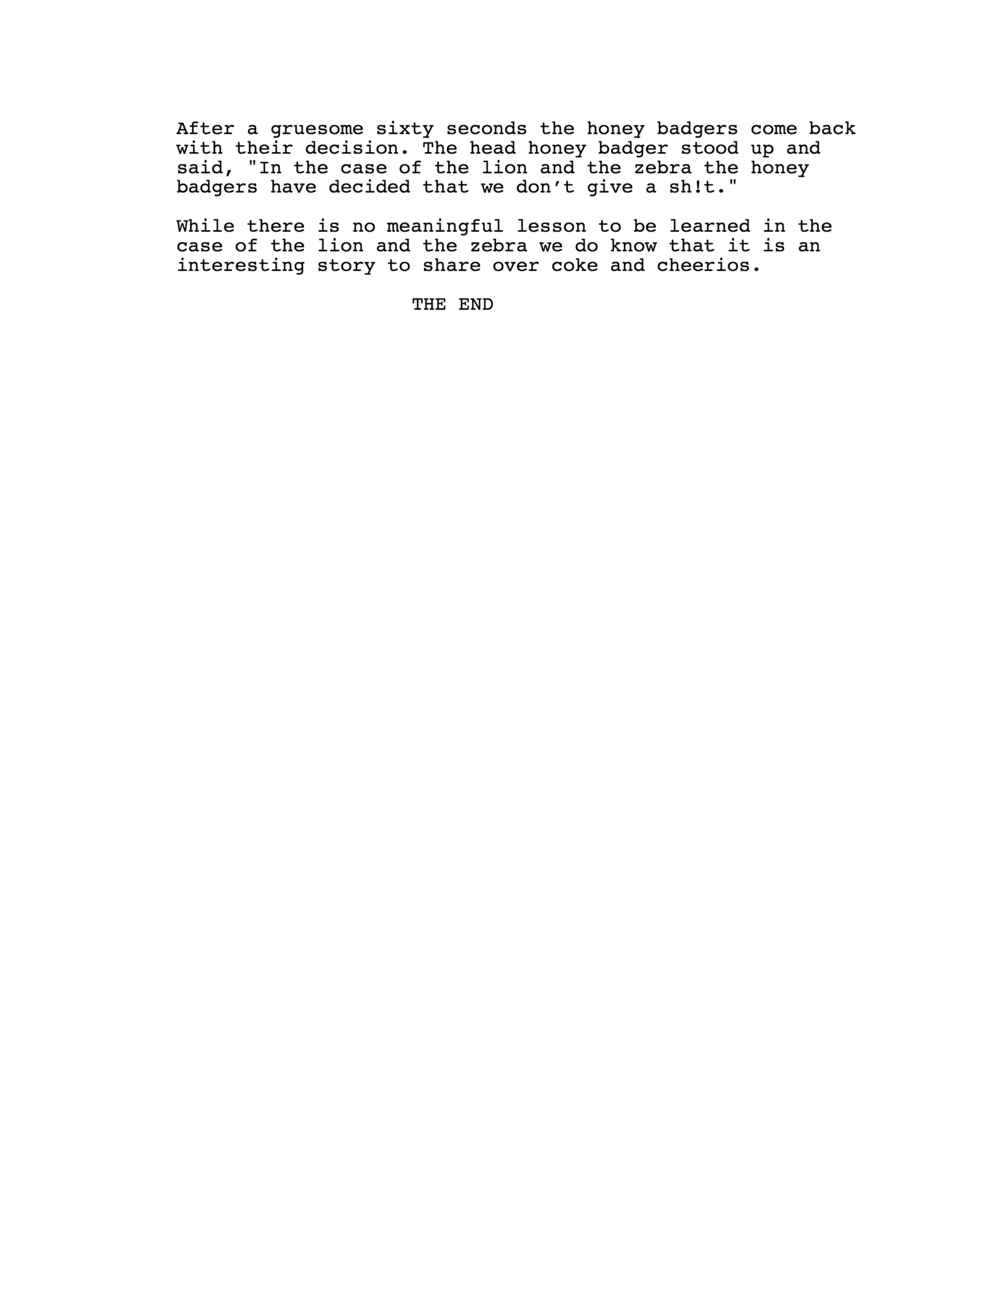 Script The Lion and the Zebra pg 3.png